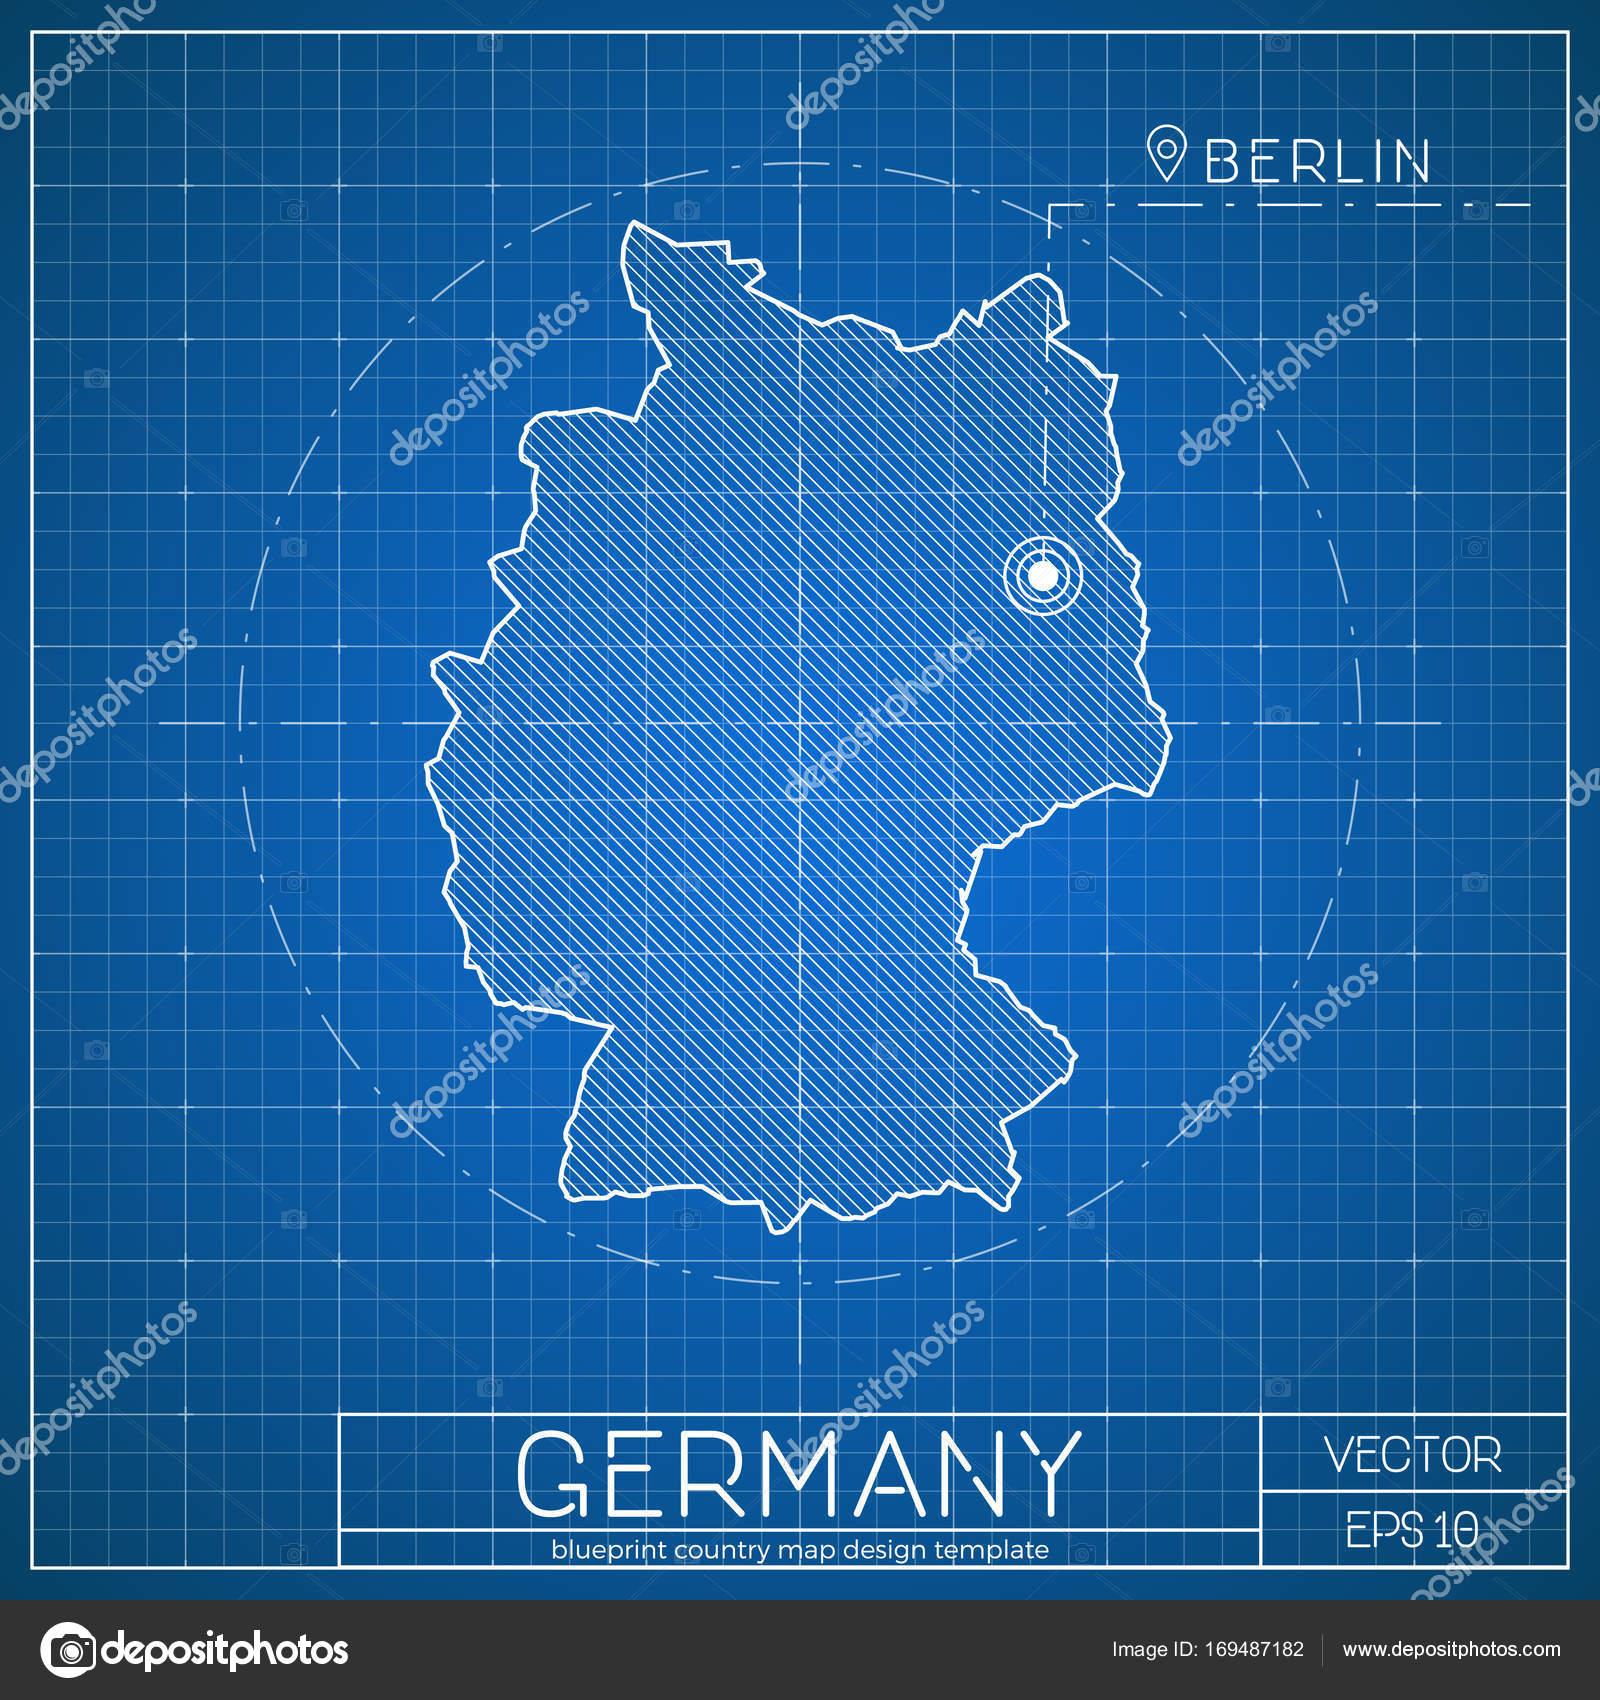 Germany blueprint map template with capital city berlin marked on germany blueprint map template with capital city berlin marked on blueprint german map vector stock gumiabroncs Image collections